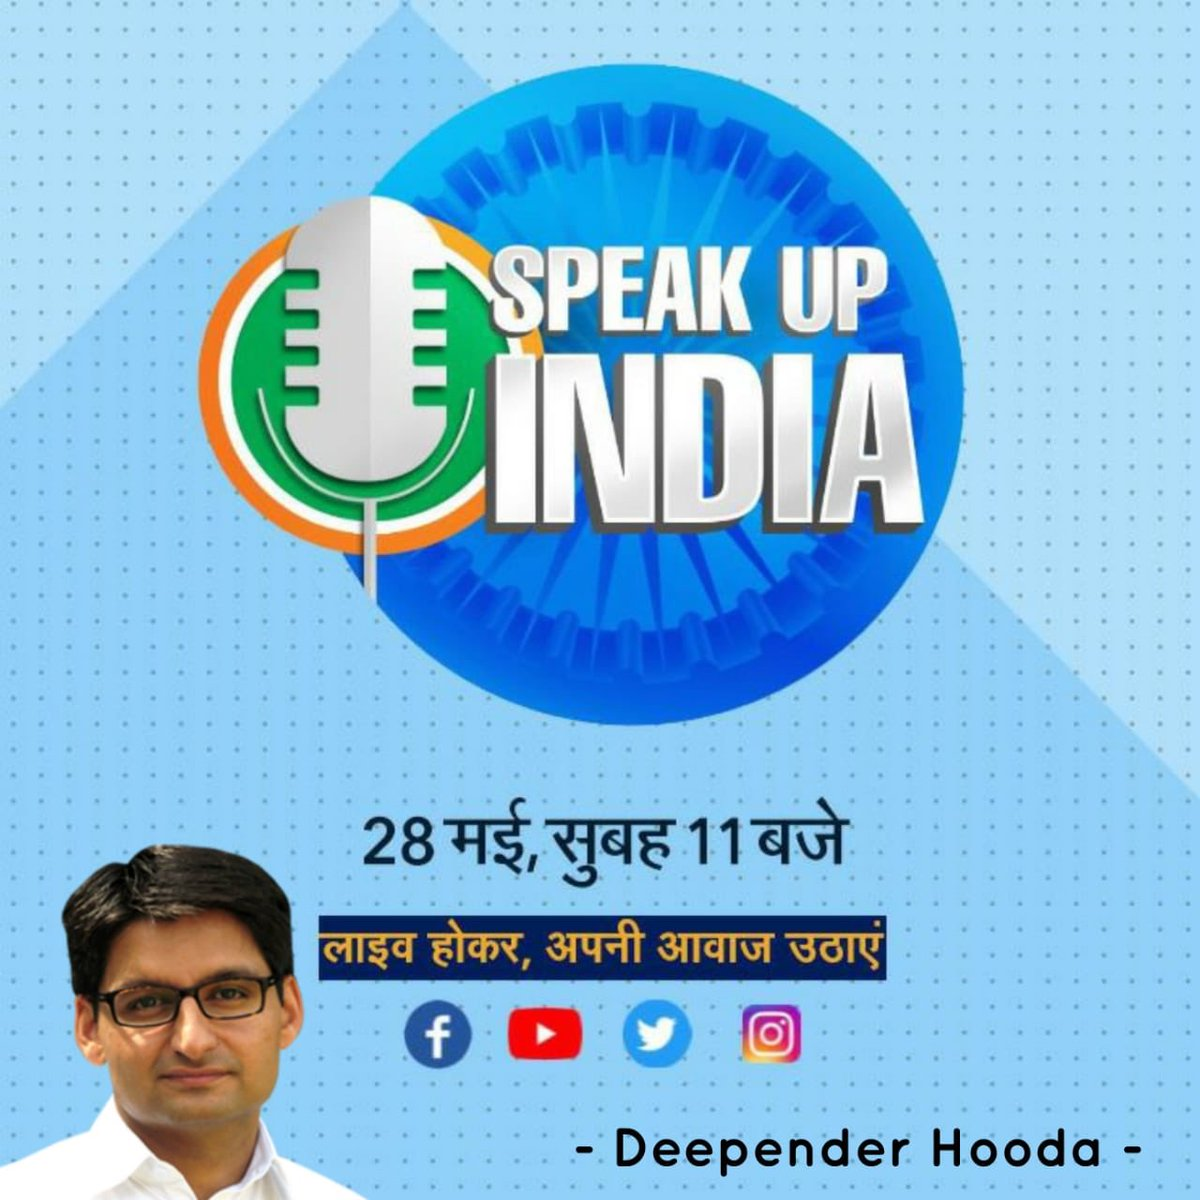 Today on 28th May 2020, 11 am to 2 pm, go live and raise your voice on social media.  Speak up for the poor, the farmers & migrants, the small and medium businesses, Speak up India!  #SpeakUpIndia https://t.co/6QRAnYwg1w